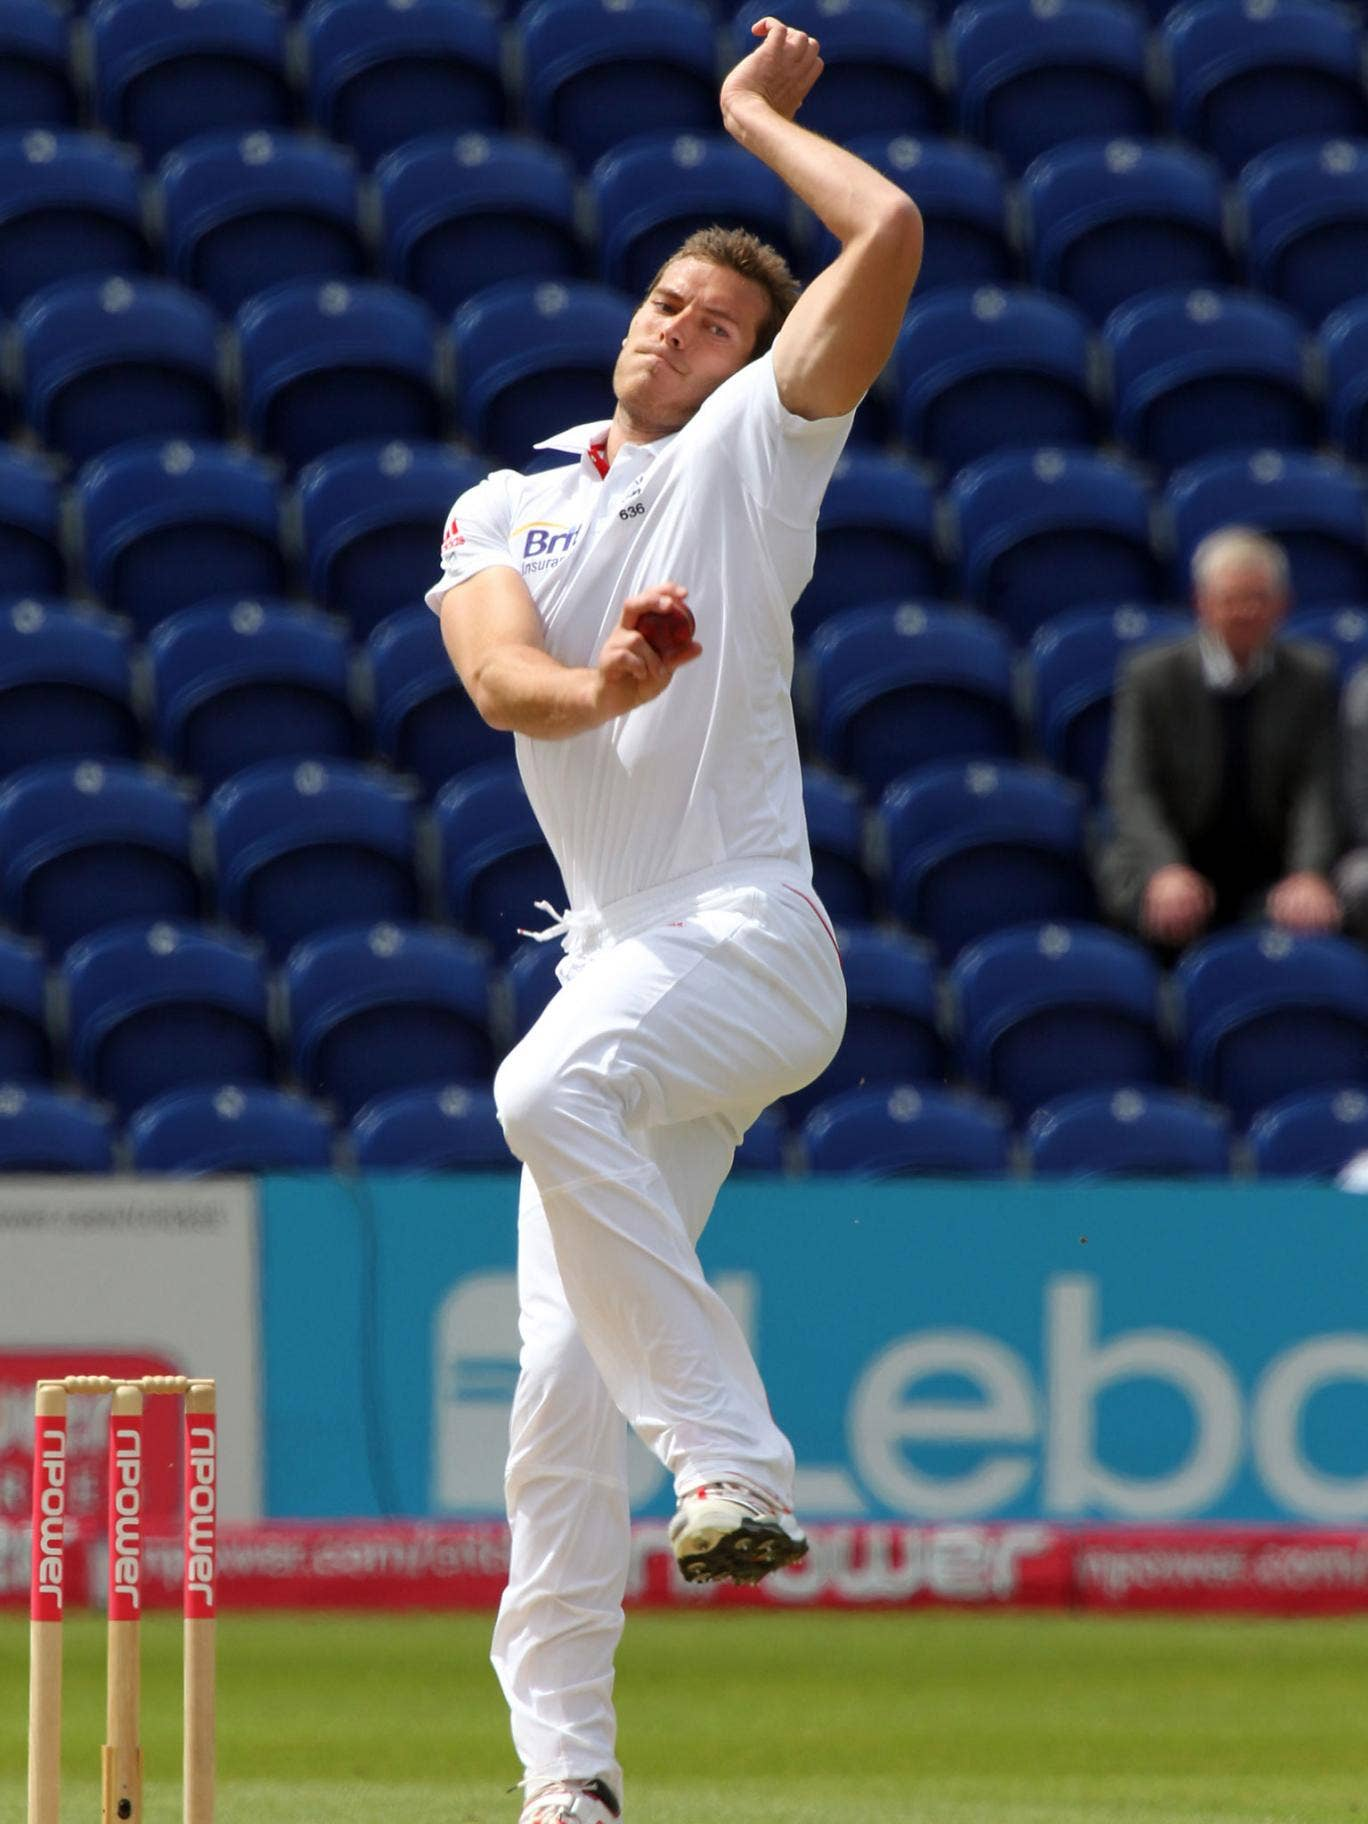 Chris Tremlett has been called up to the England squad for the third Test